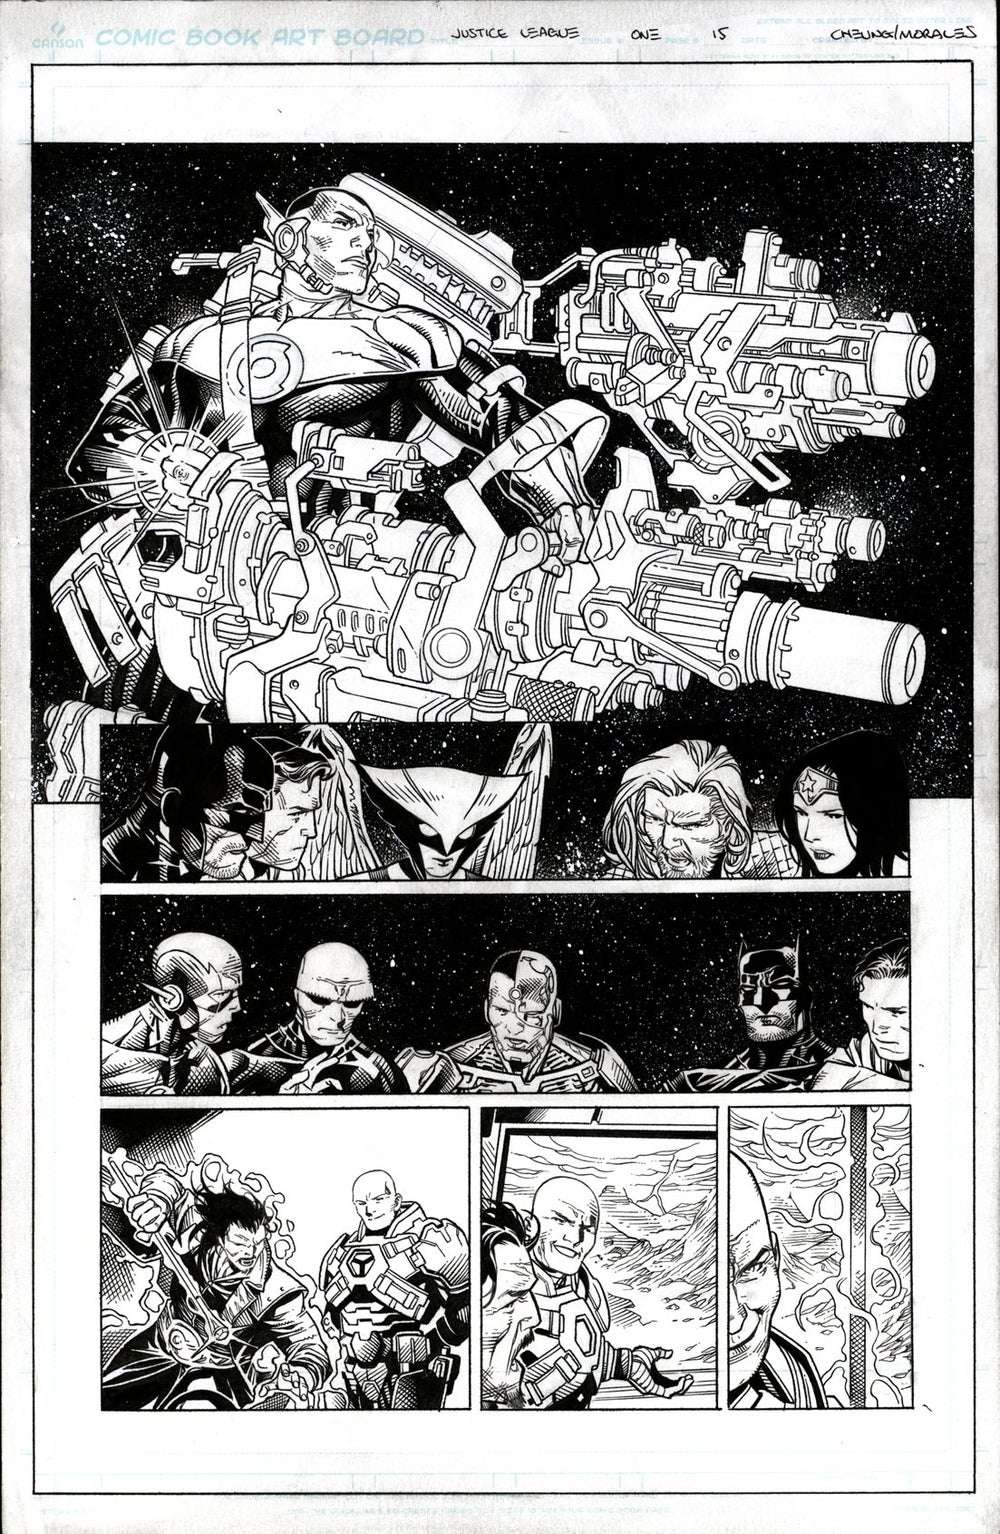 Image of JUSTICE LEAGUE #1 Page 15